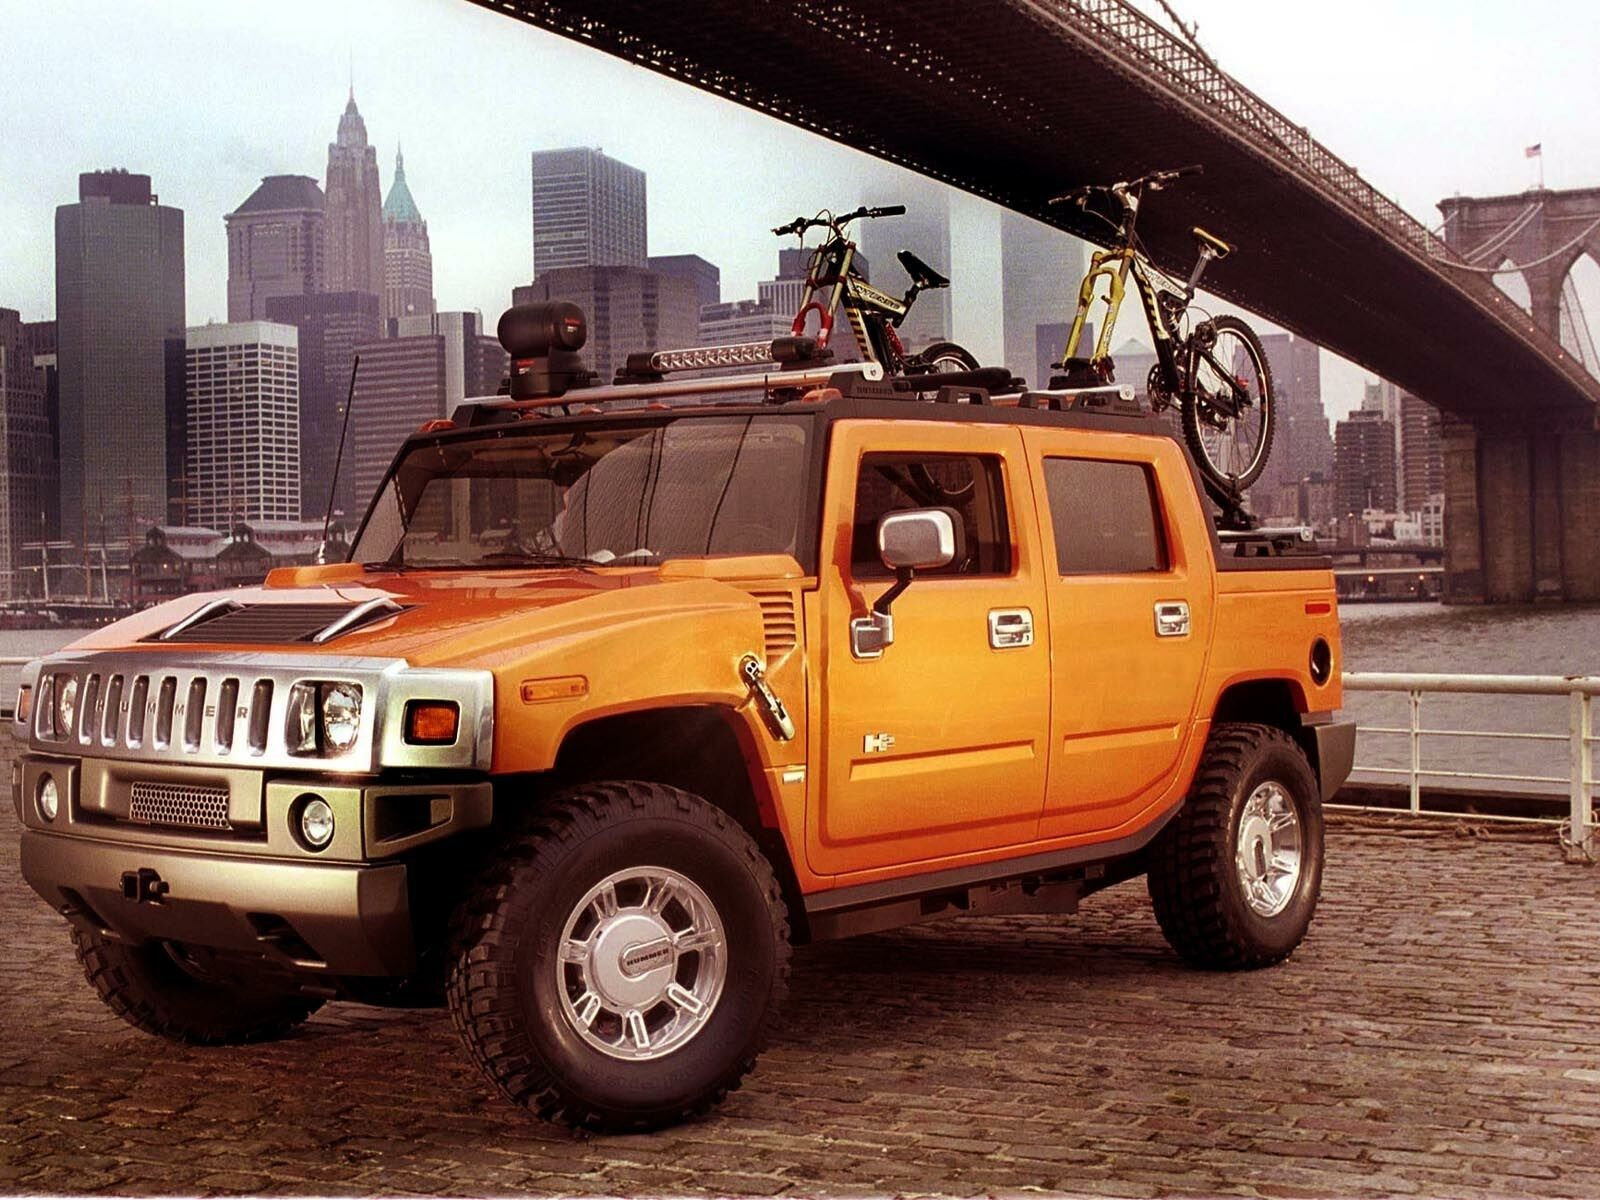 2de516316c68251ef2083c3c4b6a8a65 Cool Review About 2009 Hummer H2 Sut with Cool Pictures Cars Review